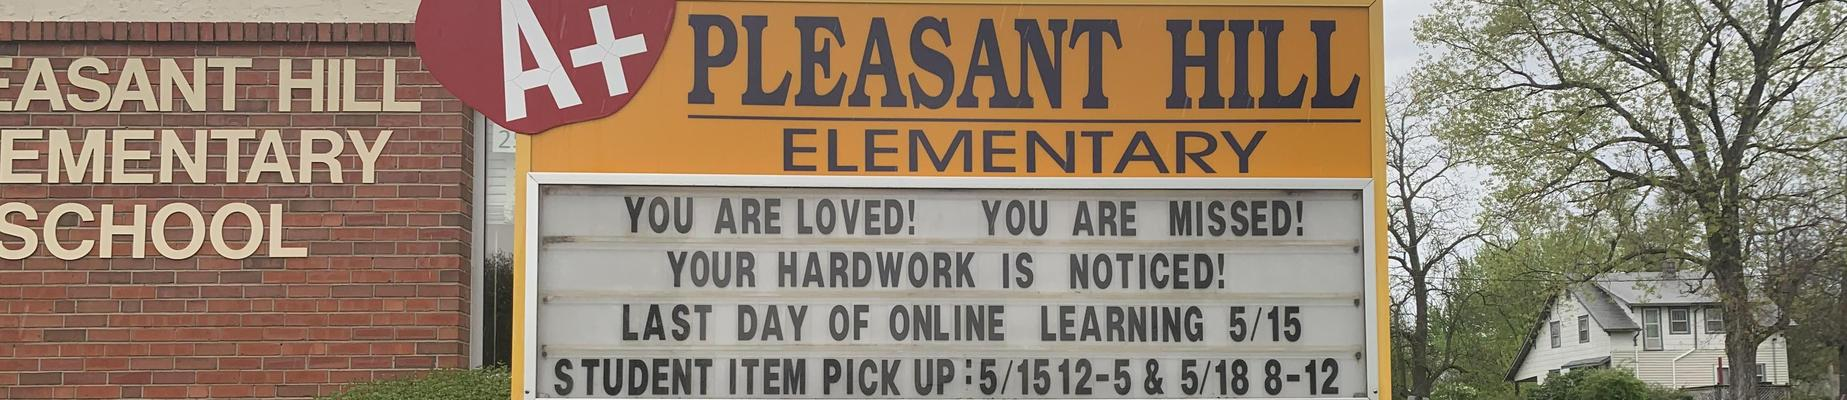 Sign in front of school. You are loved! You are missed!